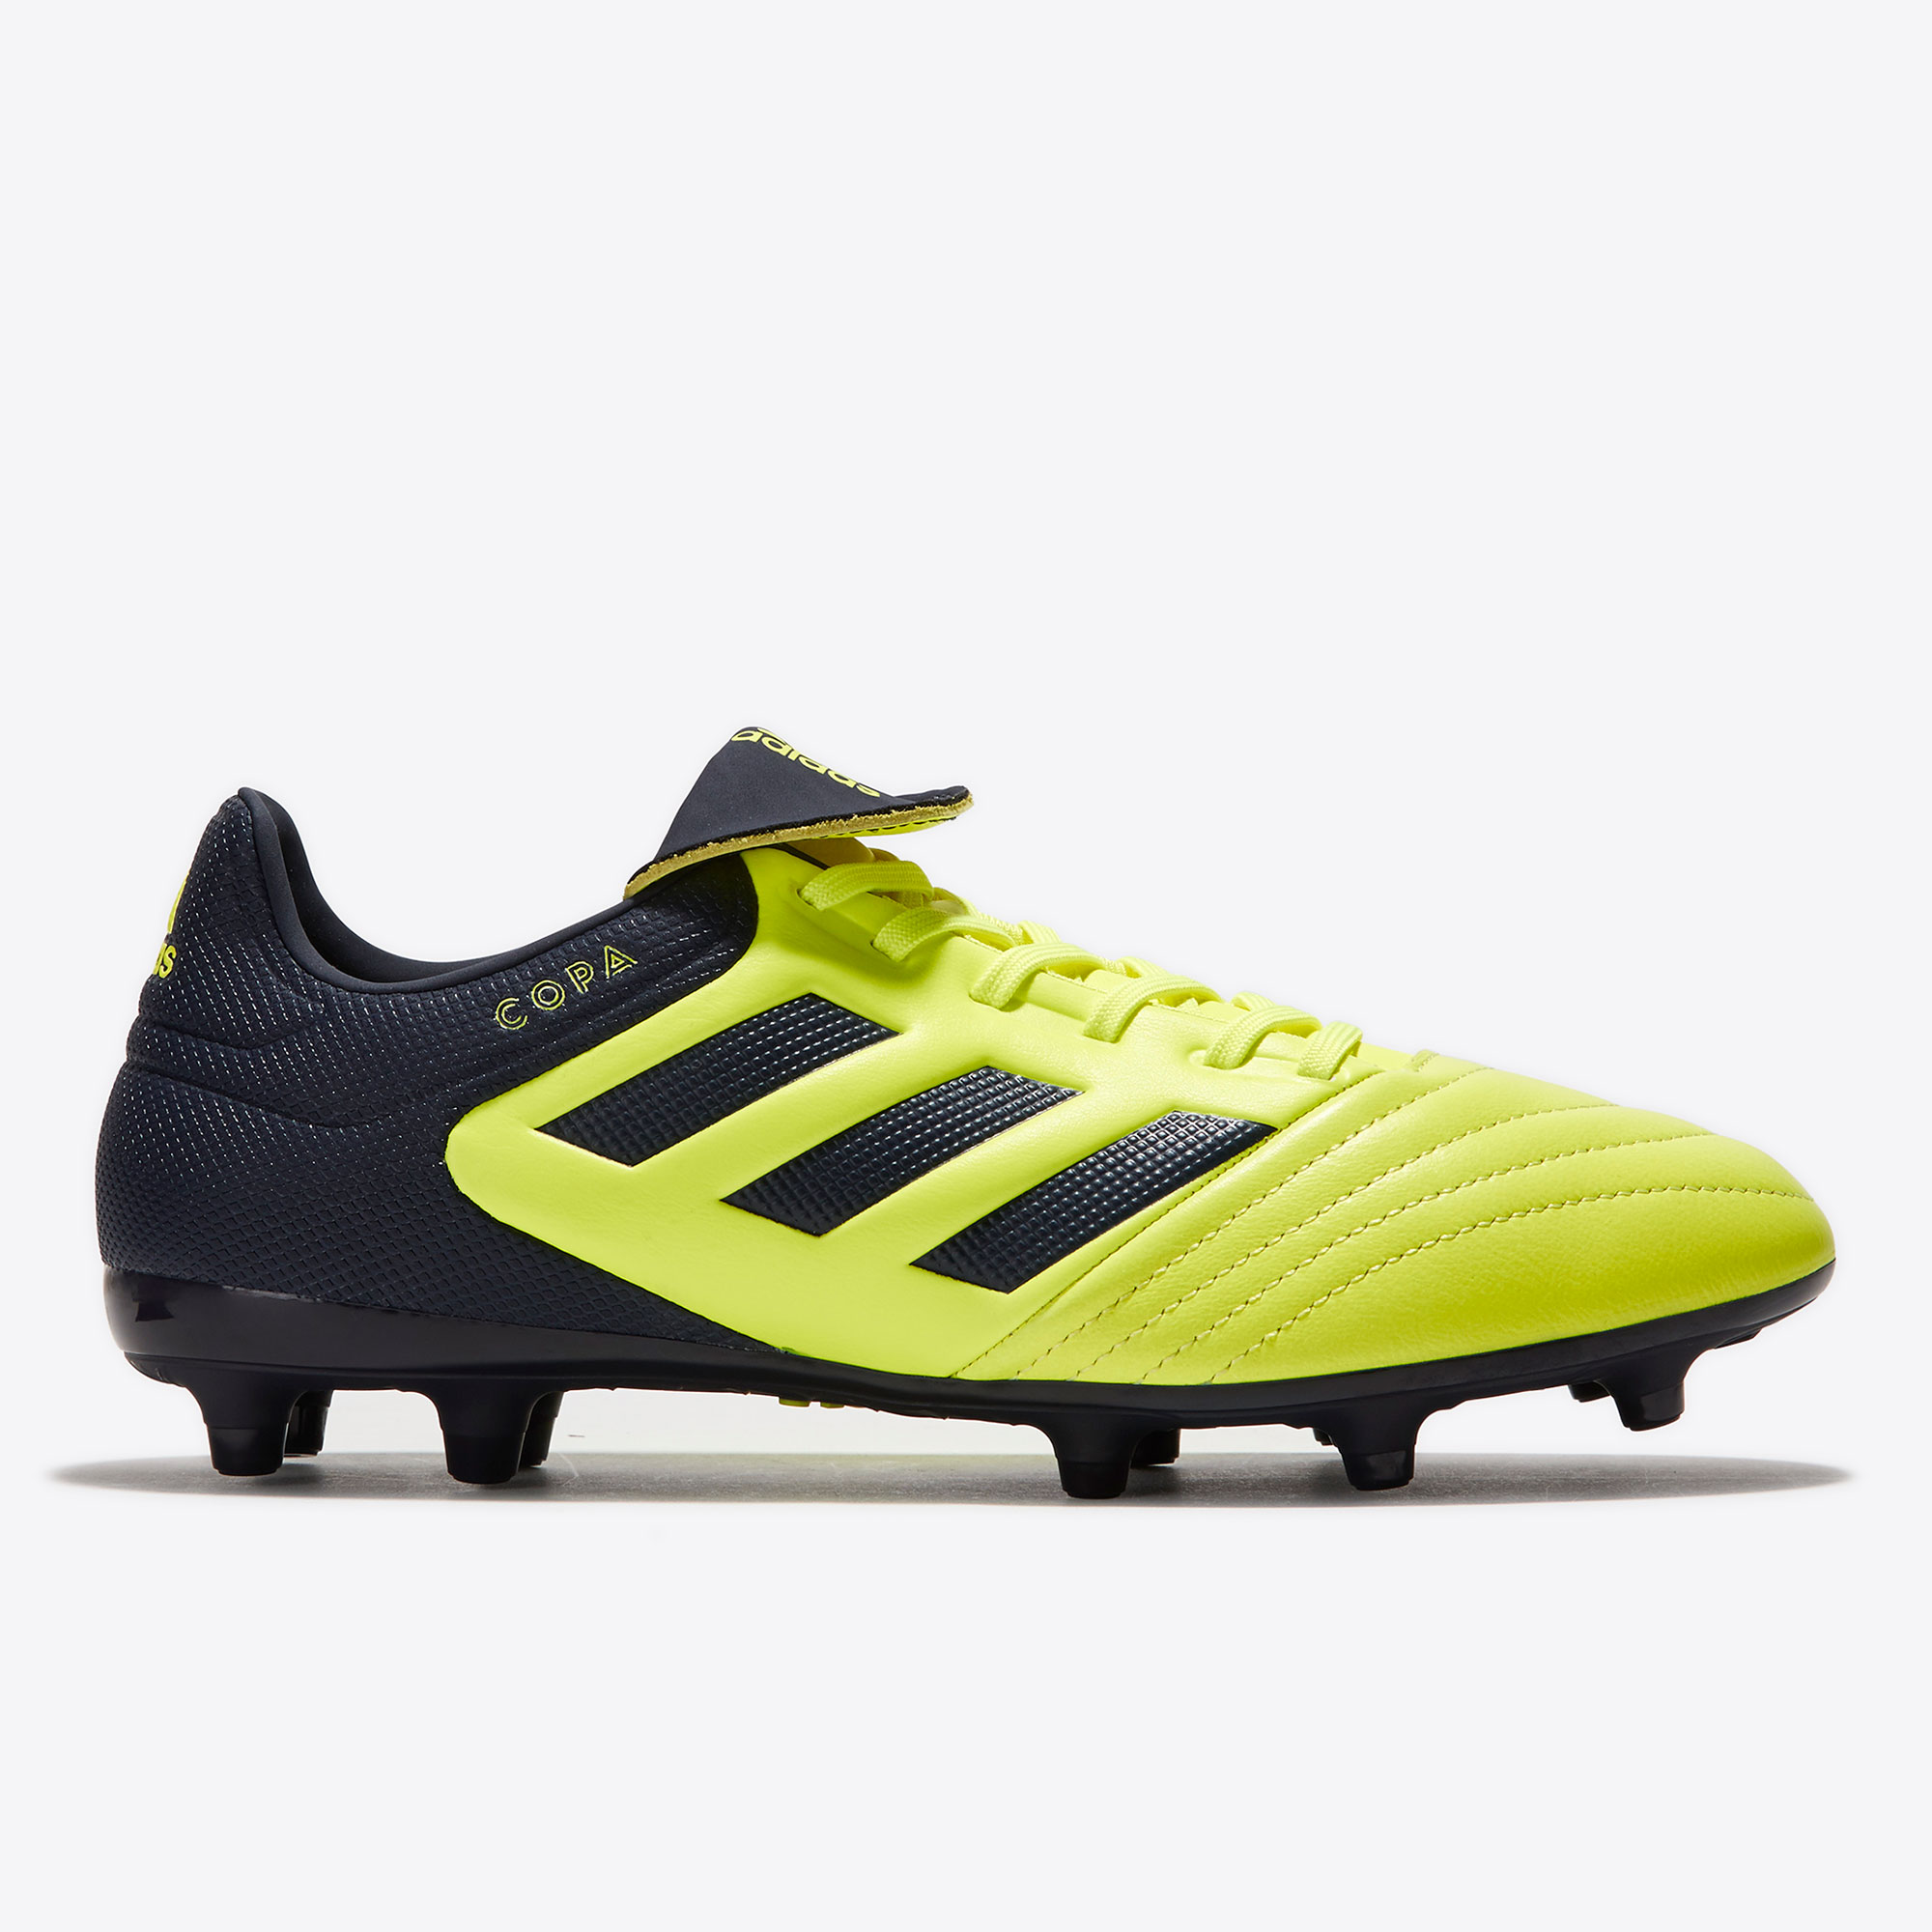 adidas Copa 17.3 Firm Ground Football Boots - Solar Yellow/Legend Ink/